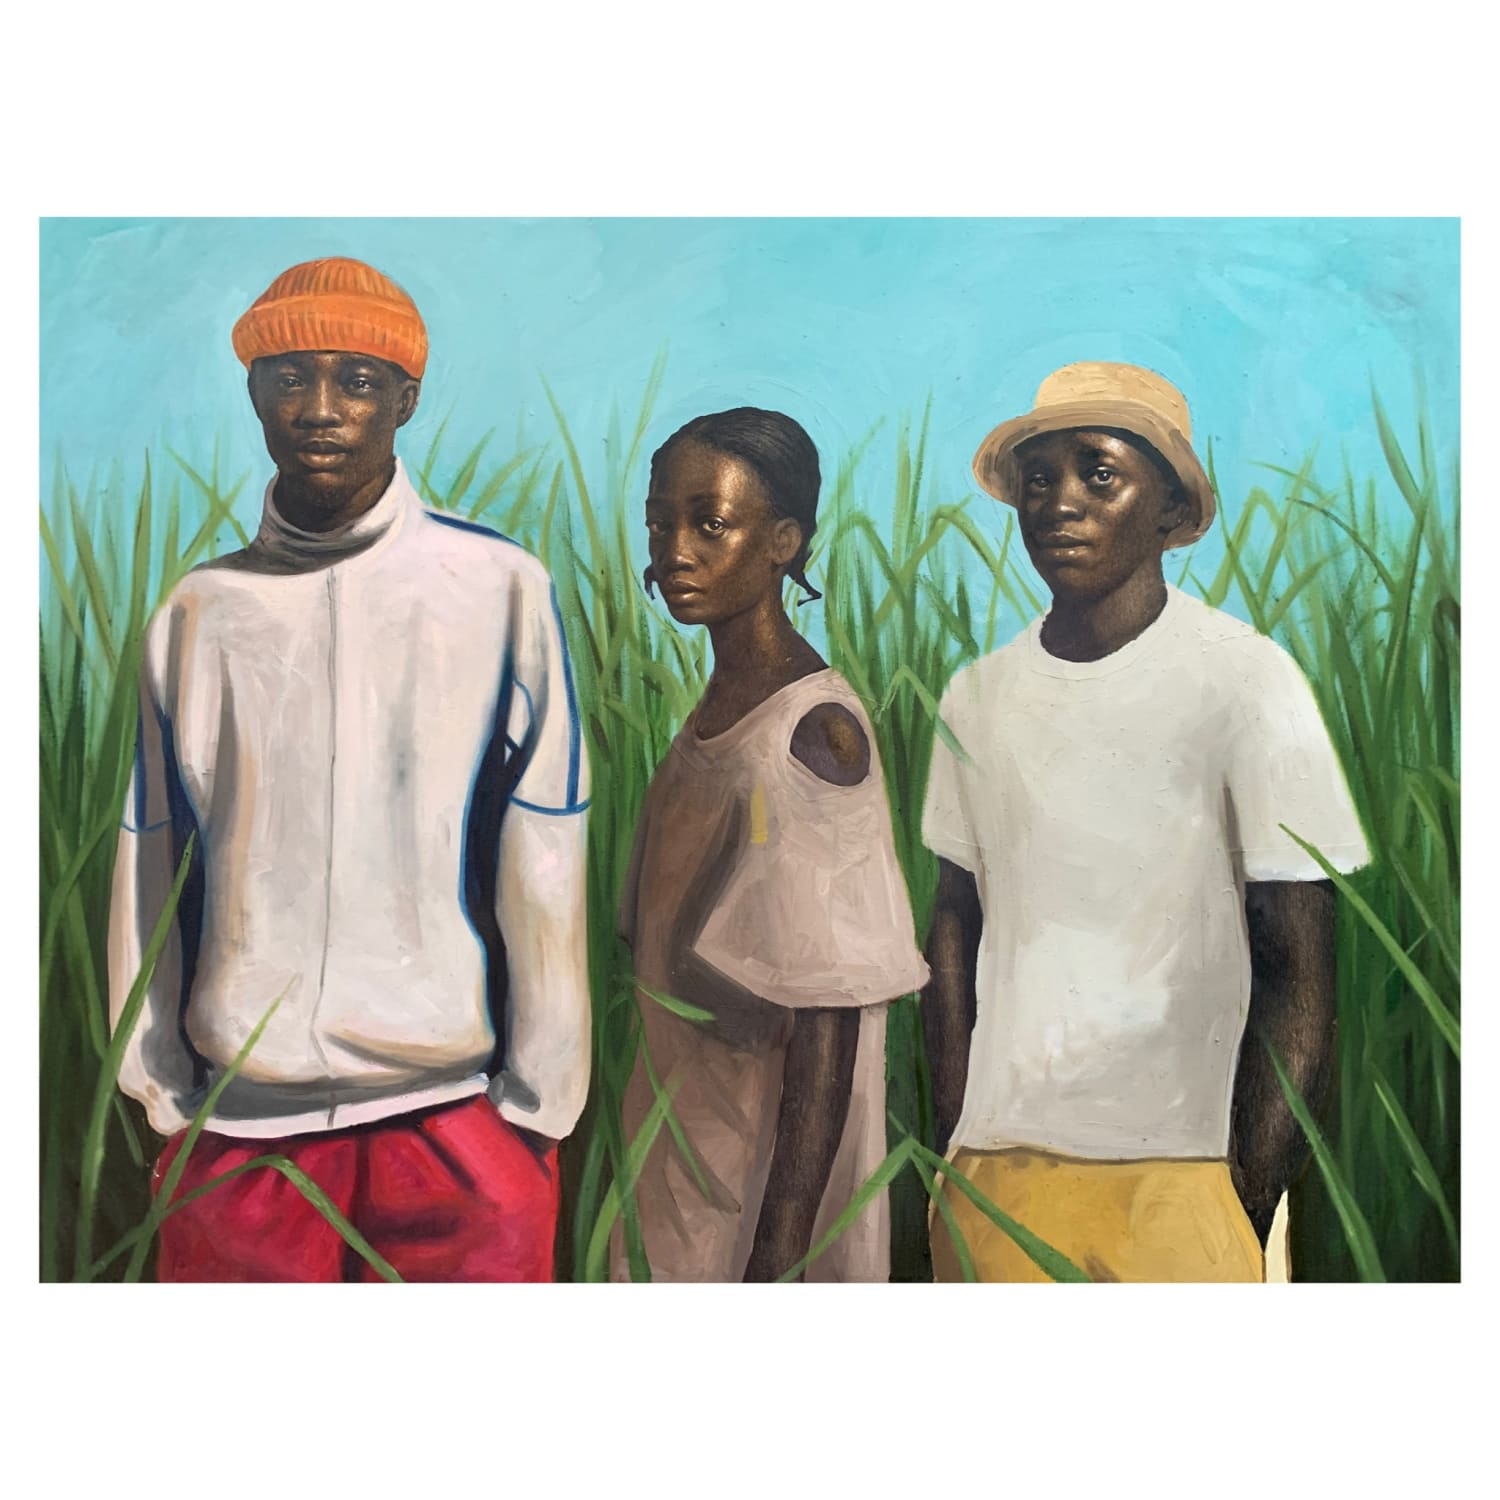 Oliver Okolo Grace Behind A Tall Grass, 2021 mixed media on Canvas 114.3 x 152.4 cms 45 x 60 inches